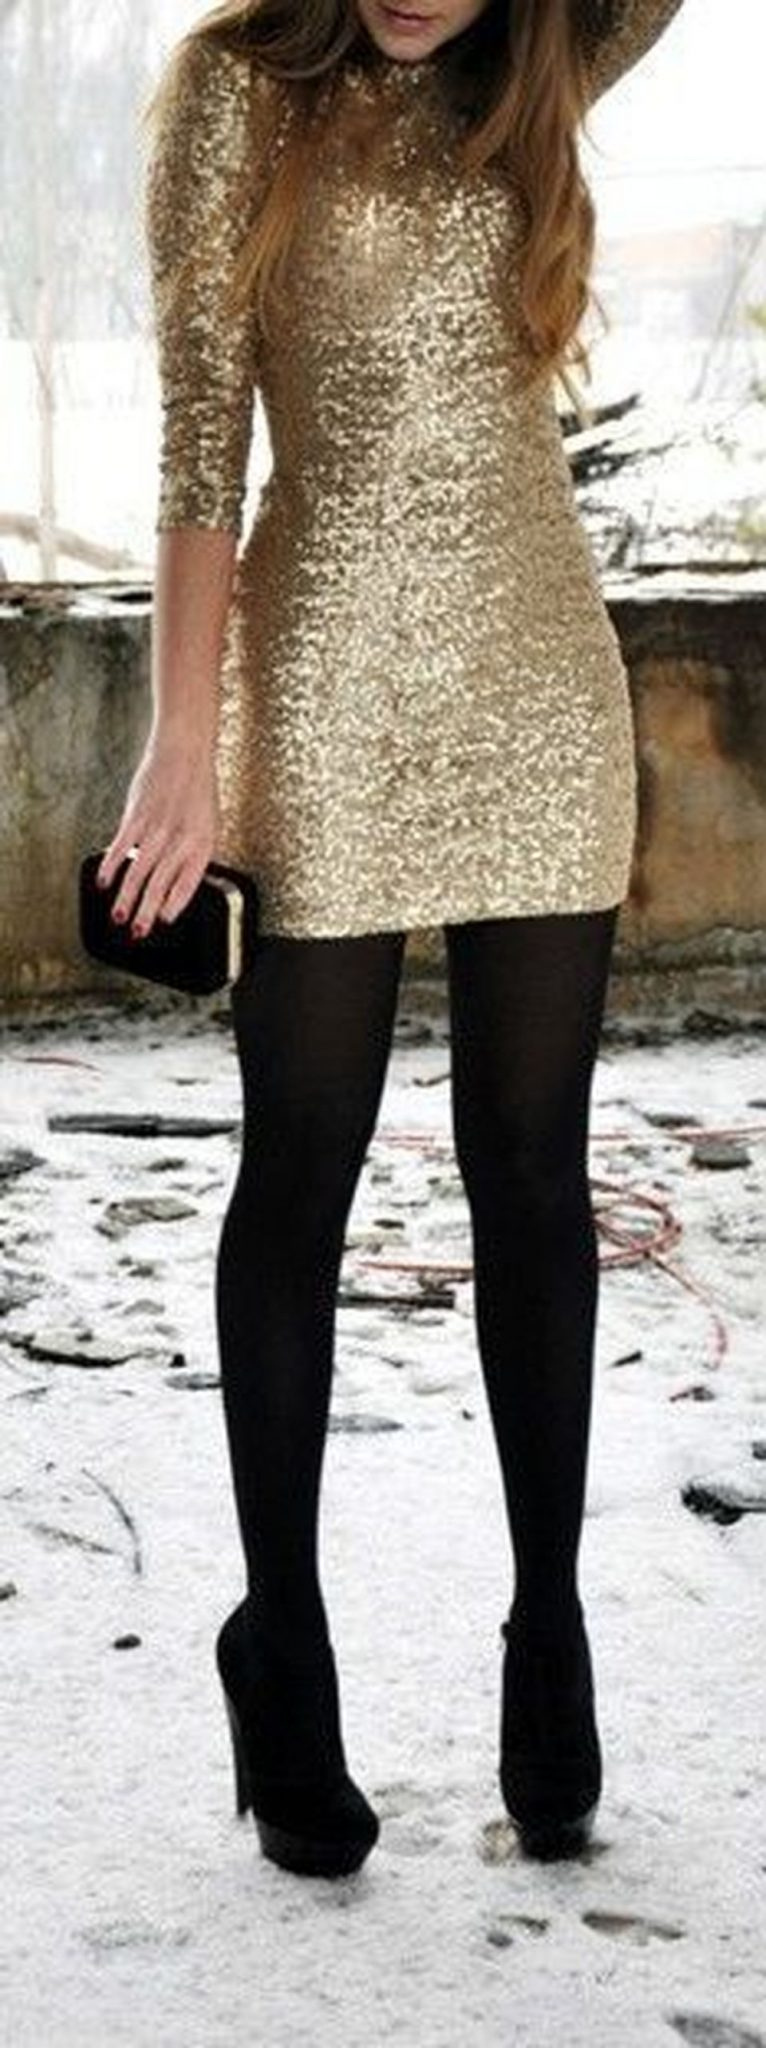 Sequin dress for new year eve party and night out 21